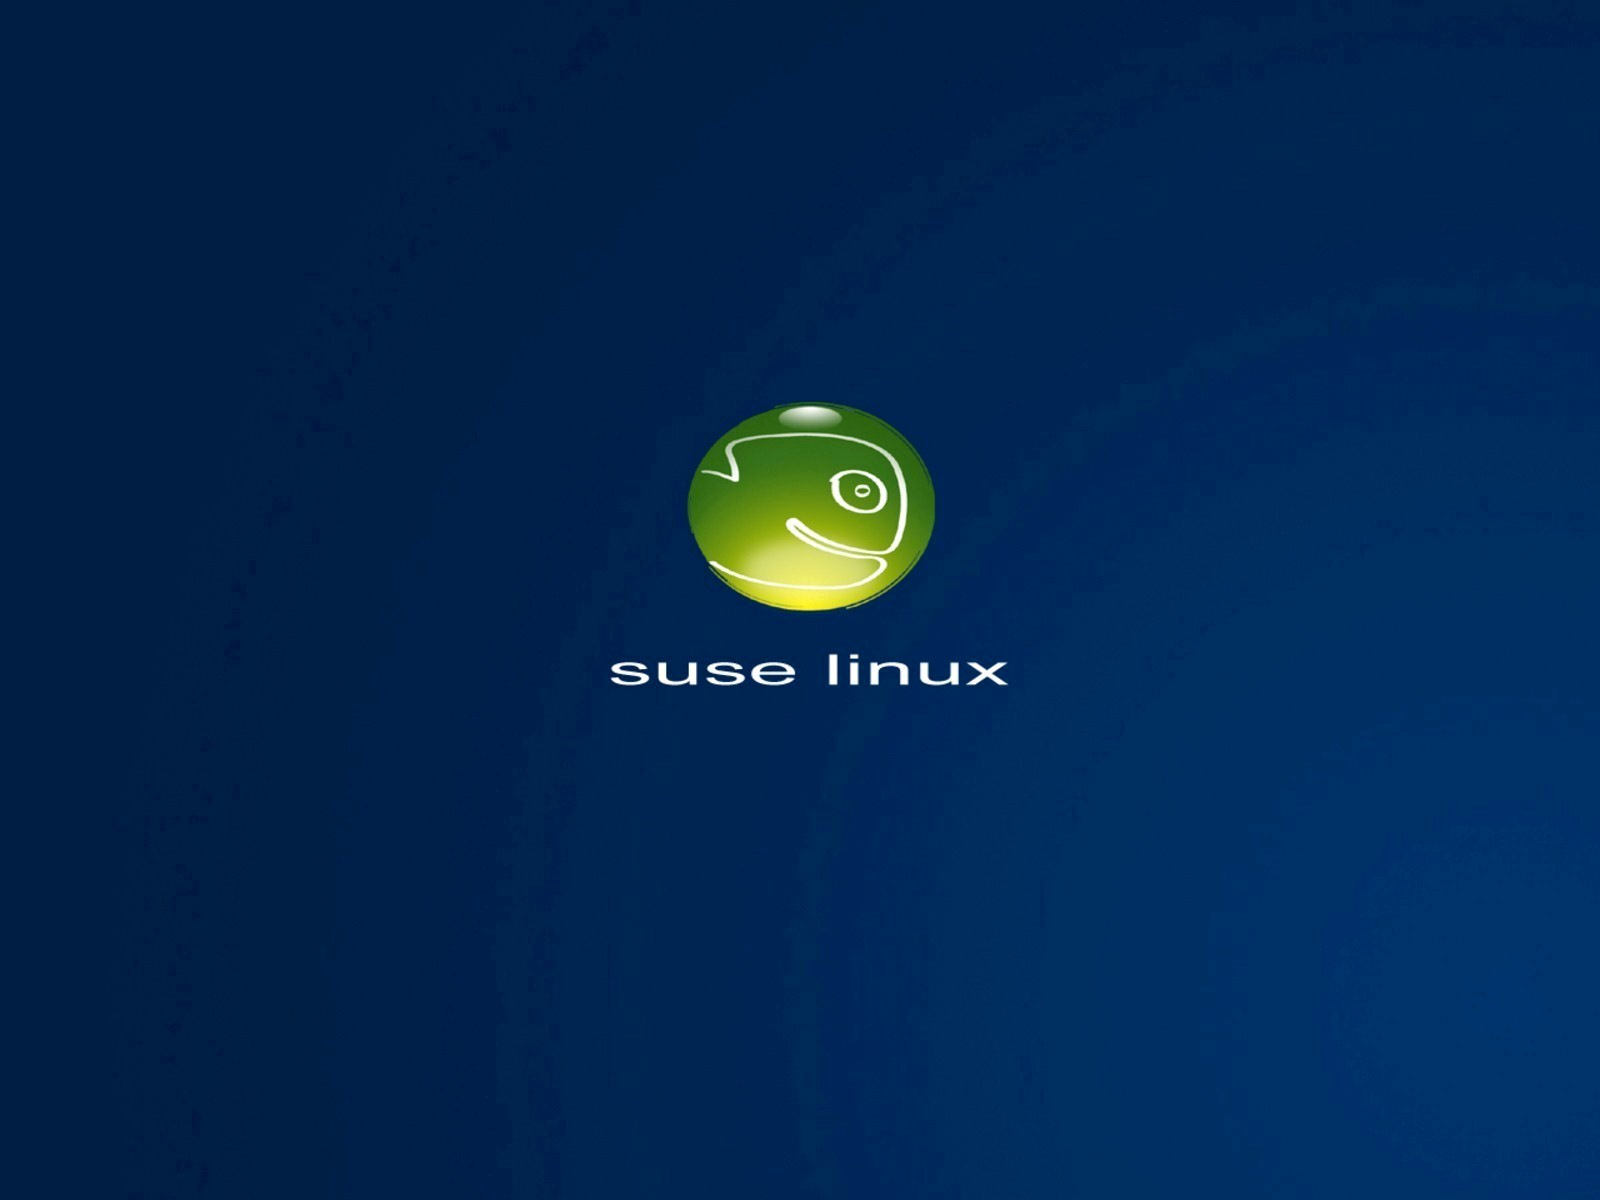 Suse Linux Blue Background HD Wallpapers 1600x1200